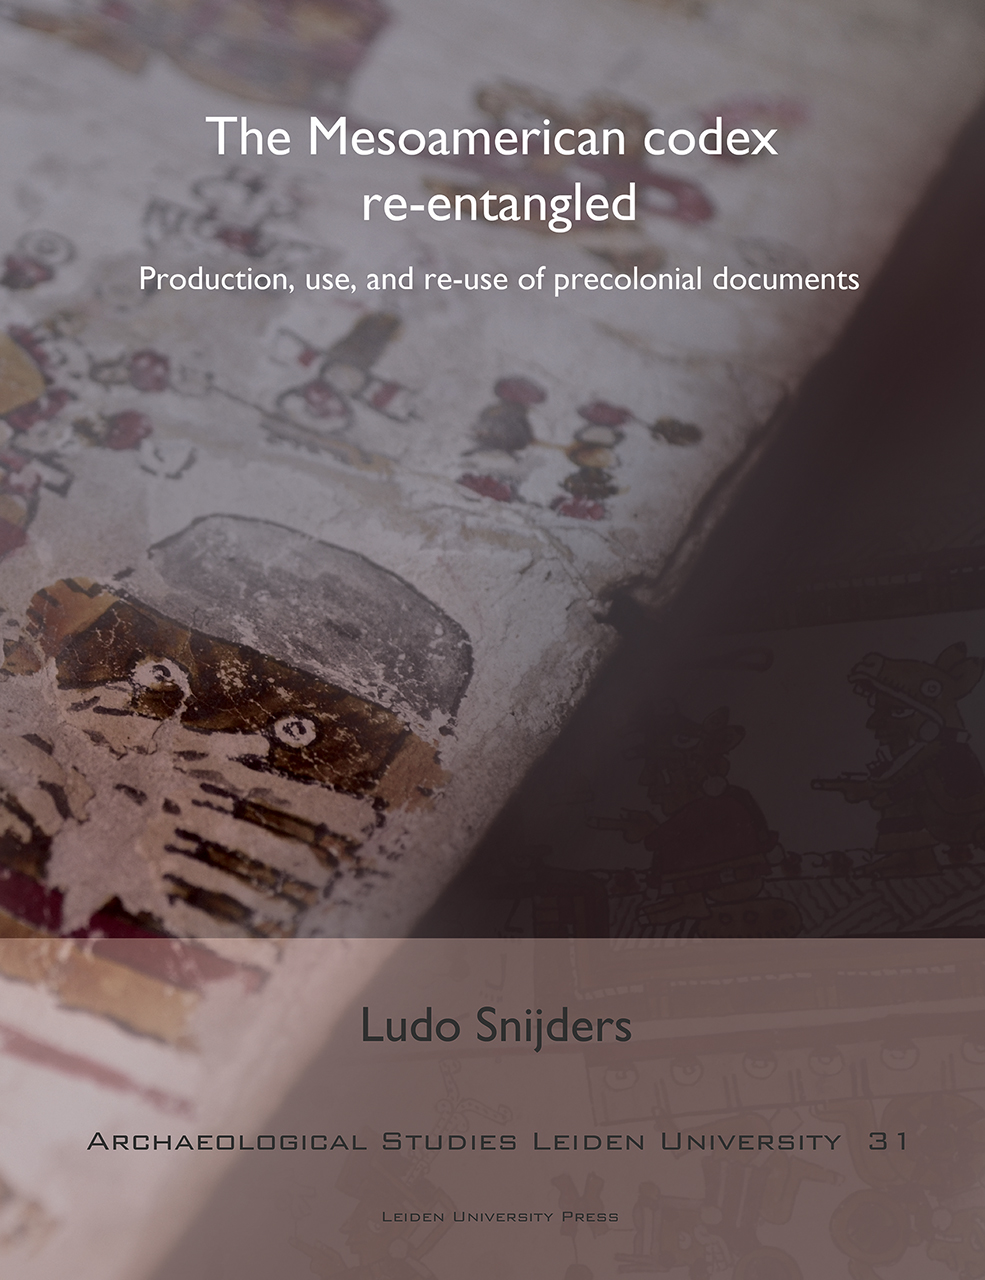 The Mesoamerican Codex Re-entangled: Production, Use and Re-use of Pre-colonial Documents